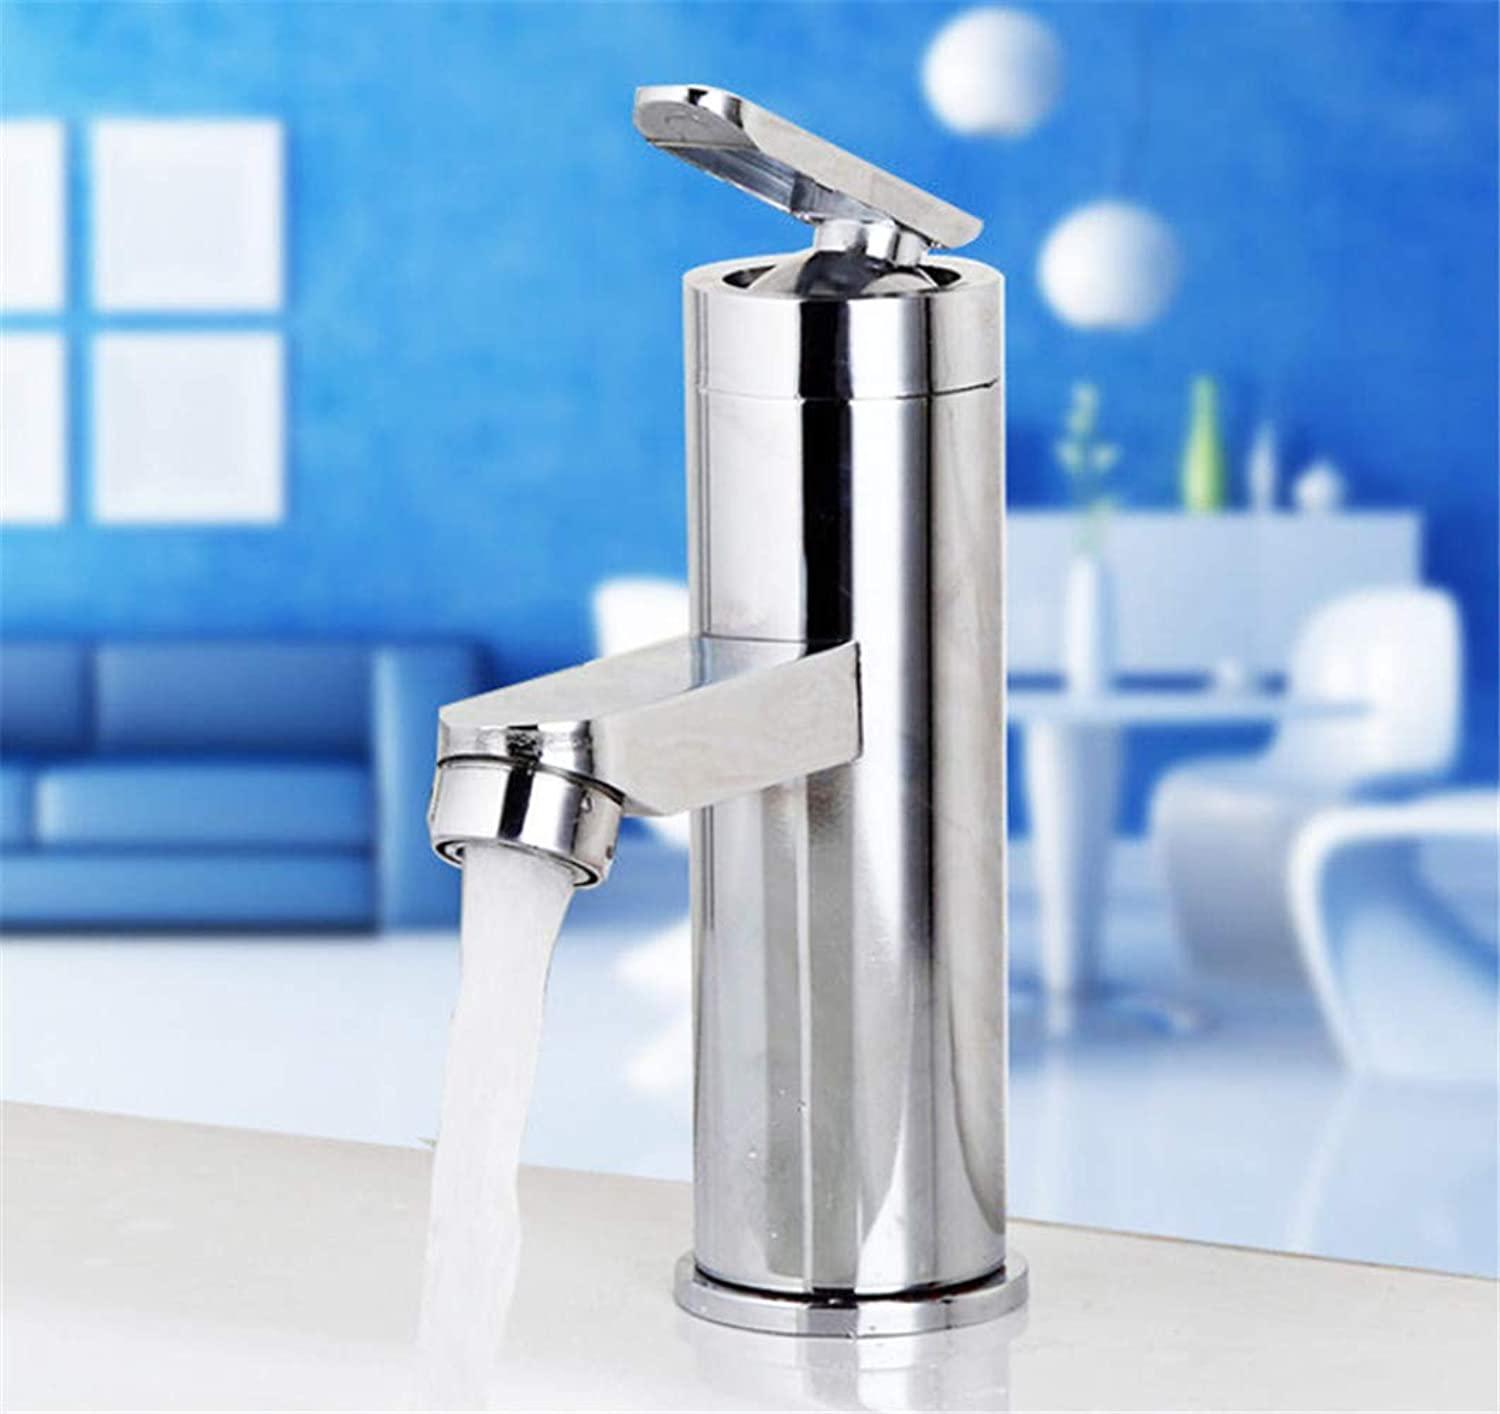 Faucet Washbasin Great Quality at A Great Price Bathroom Faucet, Basin, Sink, Faucet, Hot and Cold Faucet, Deck, Bathroom Head.